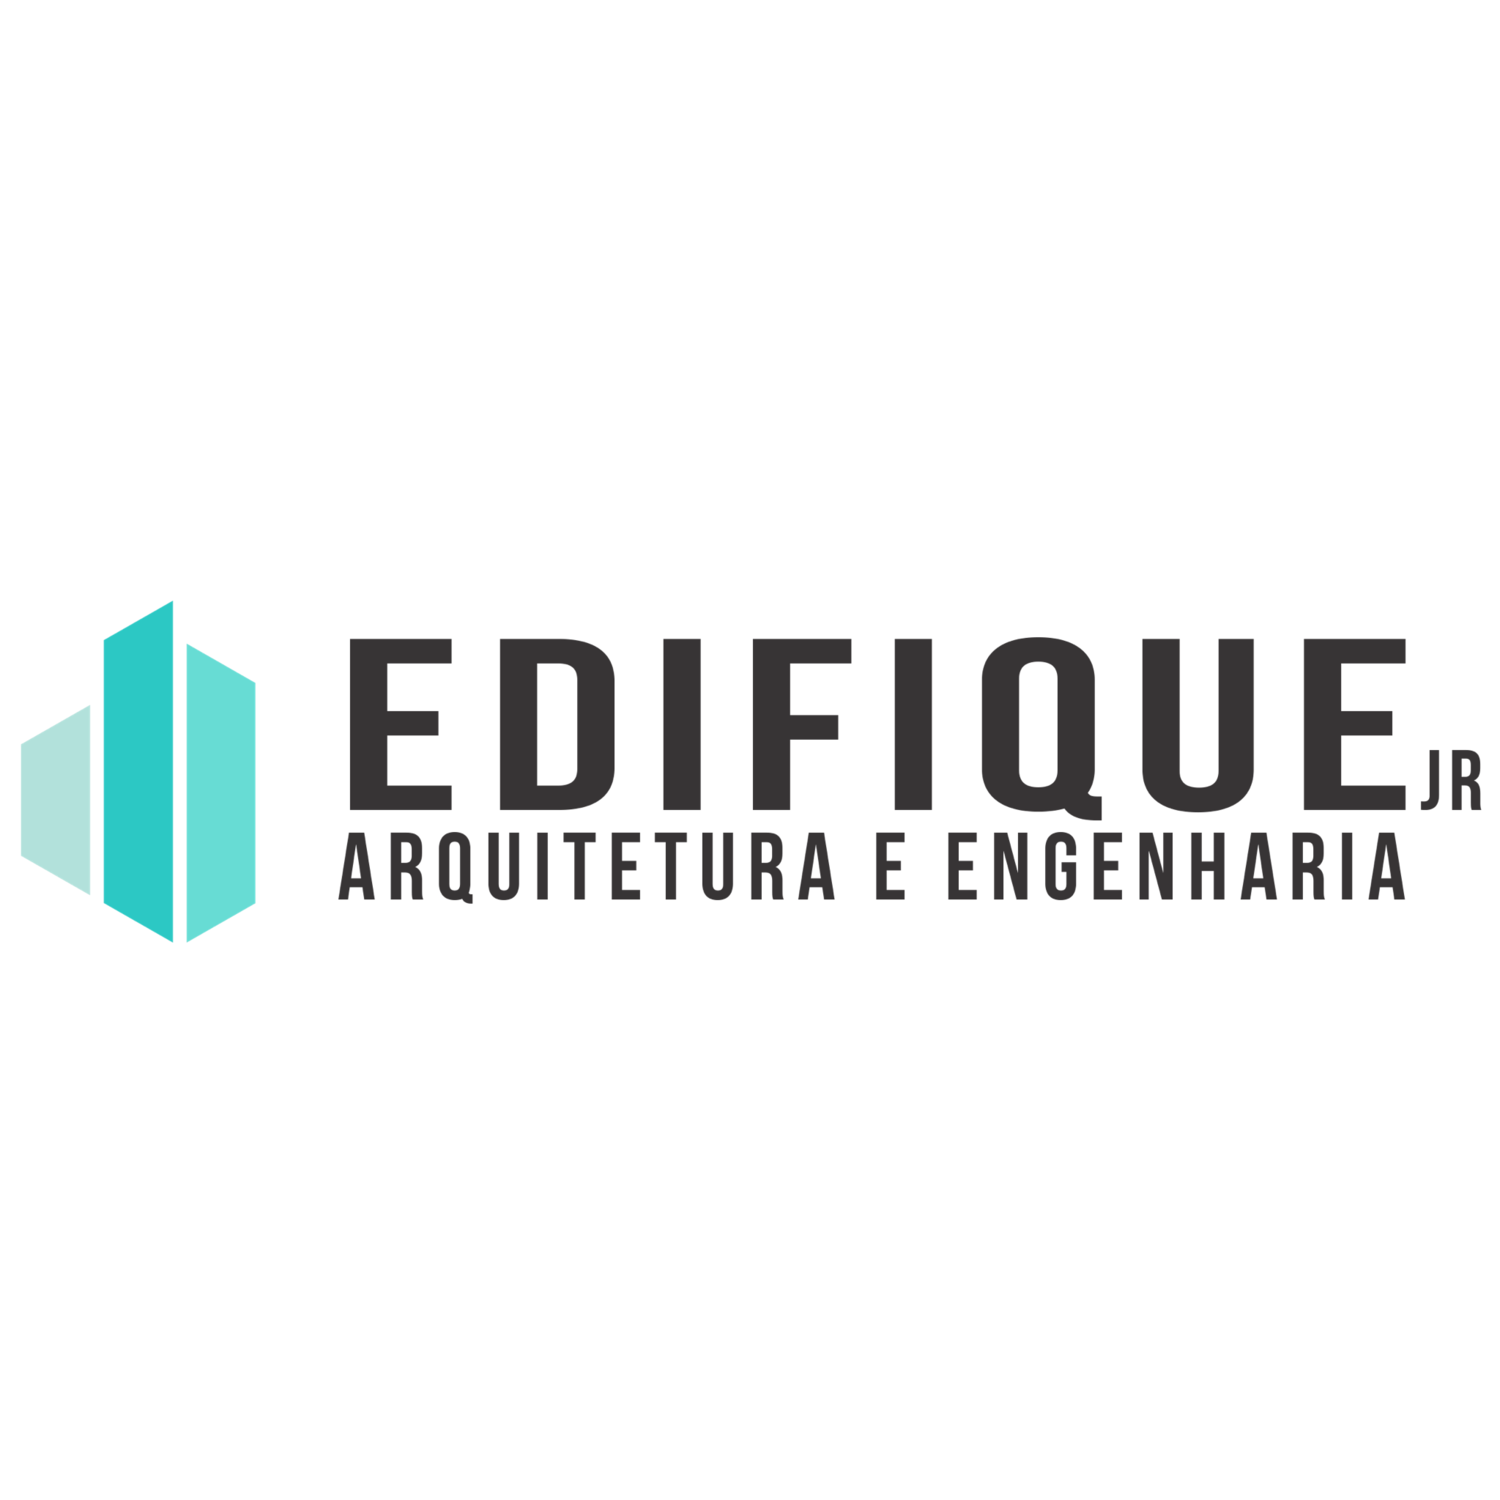 Edifique Jr